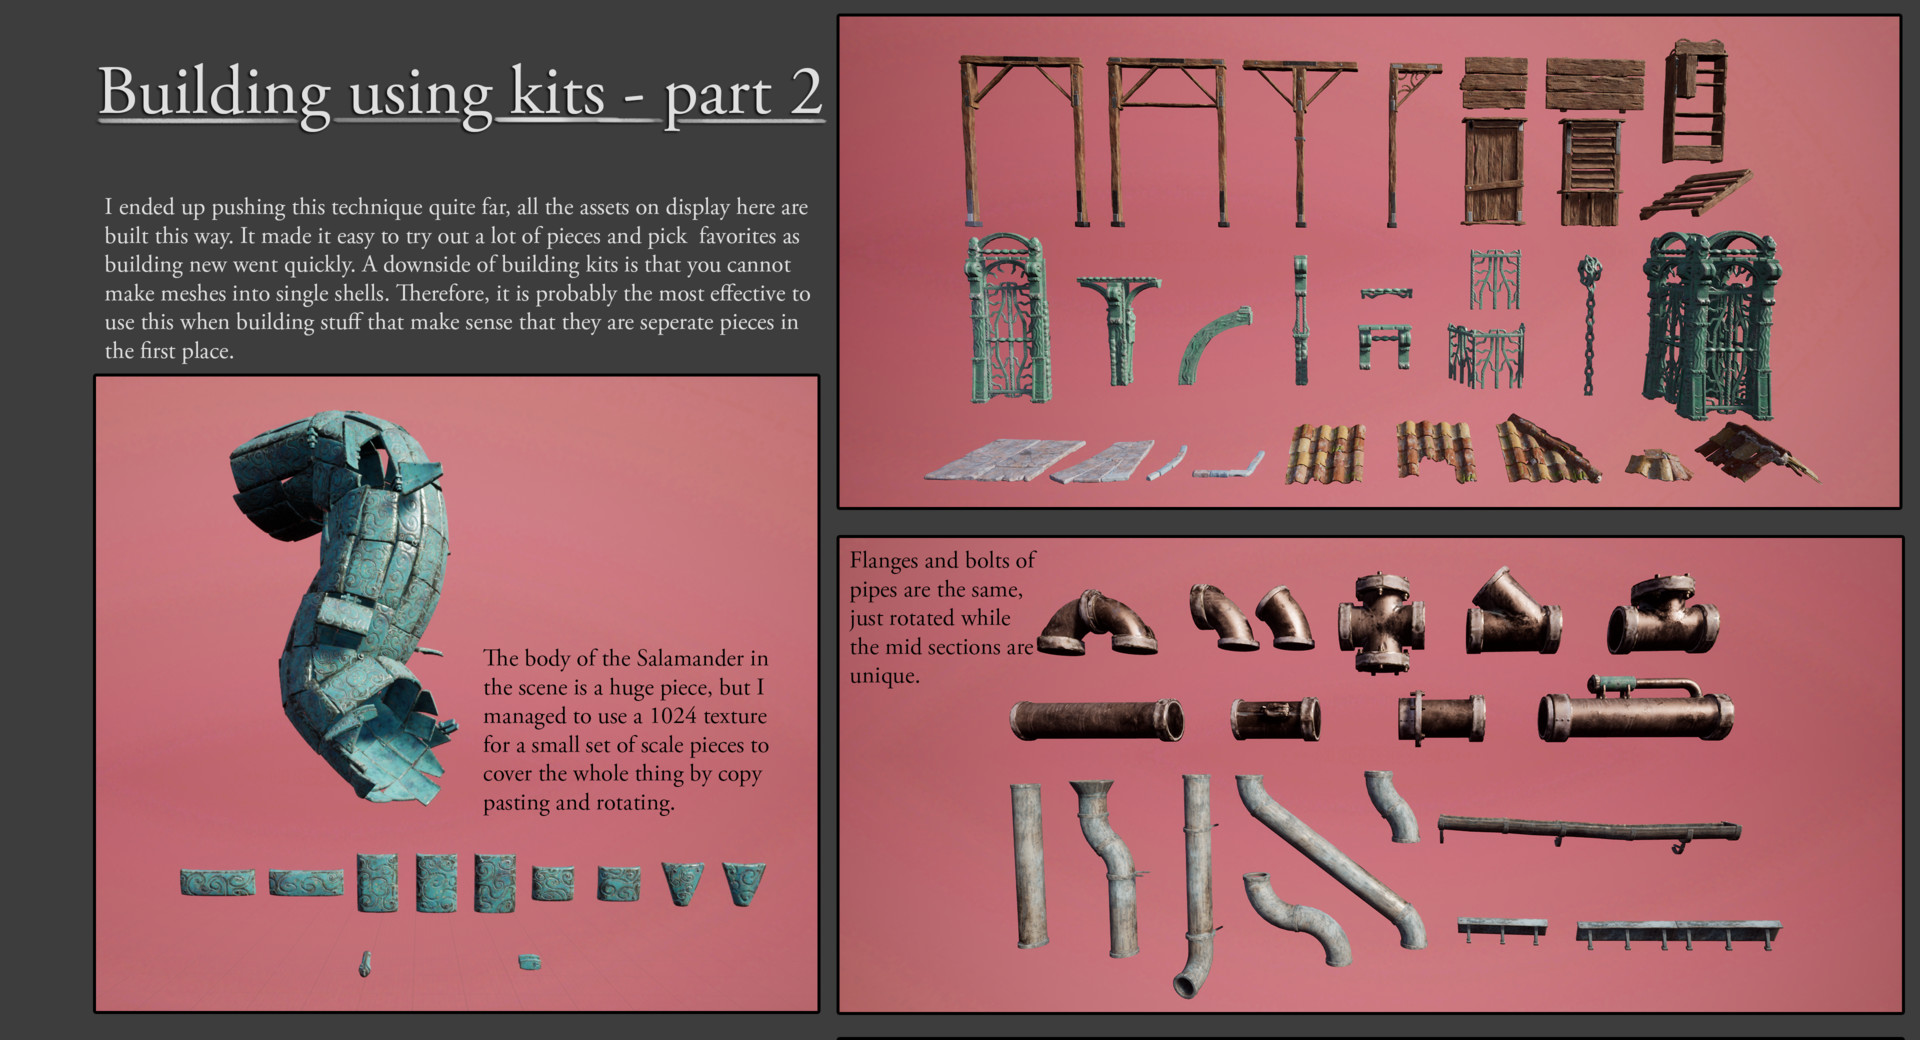 Olle norling building using kits part 2